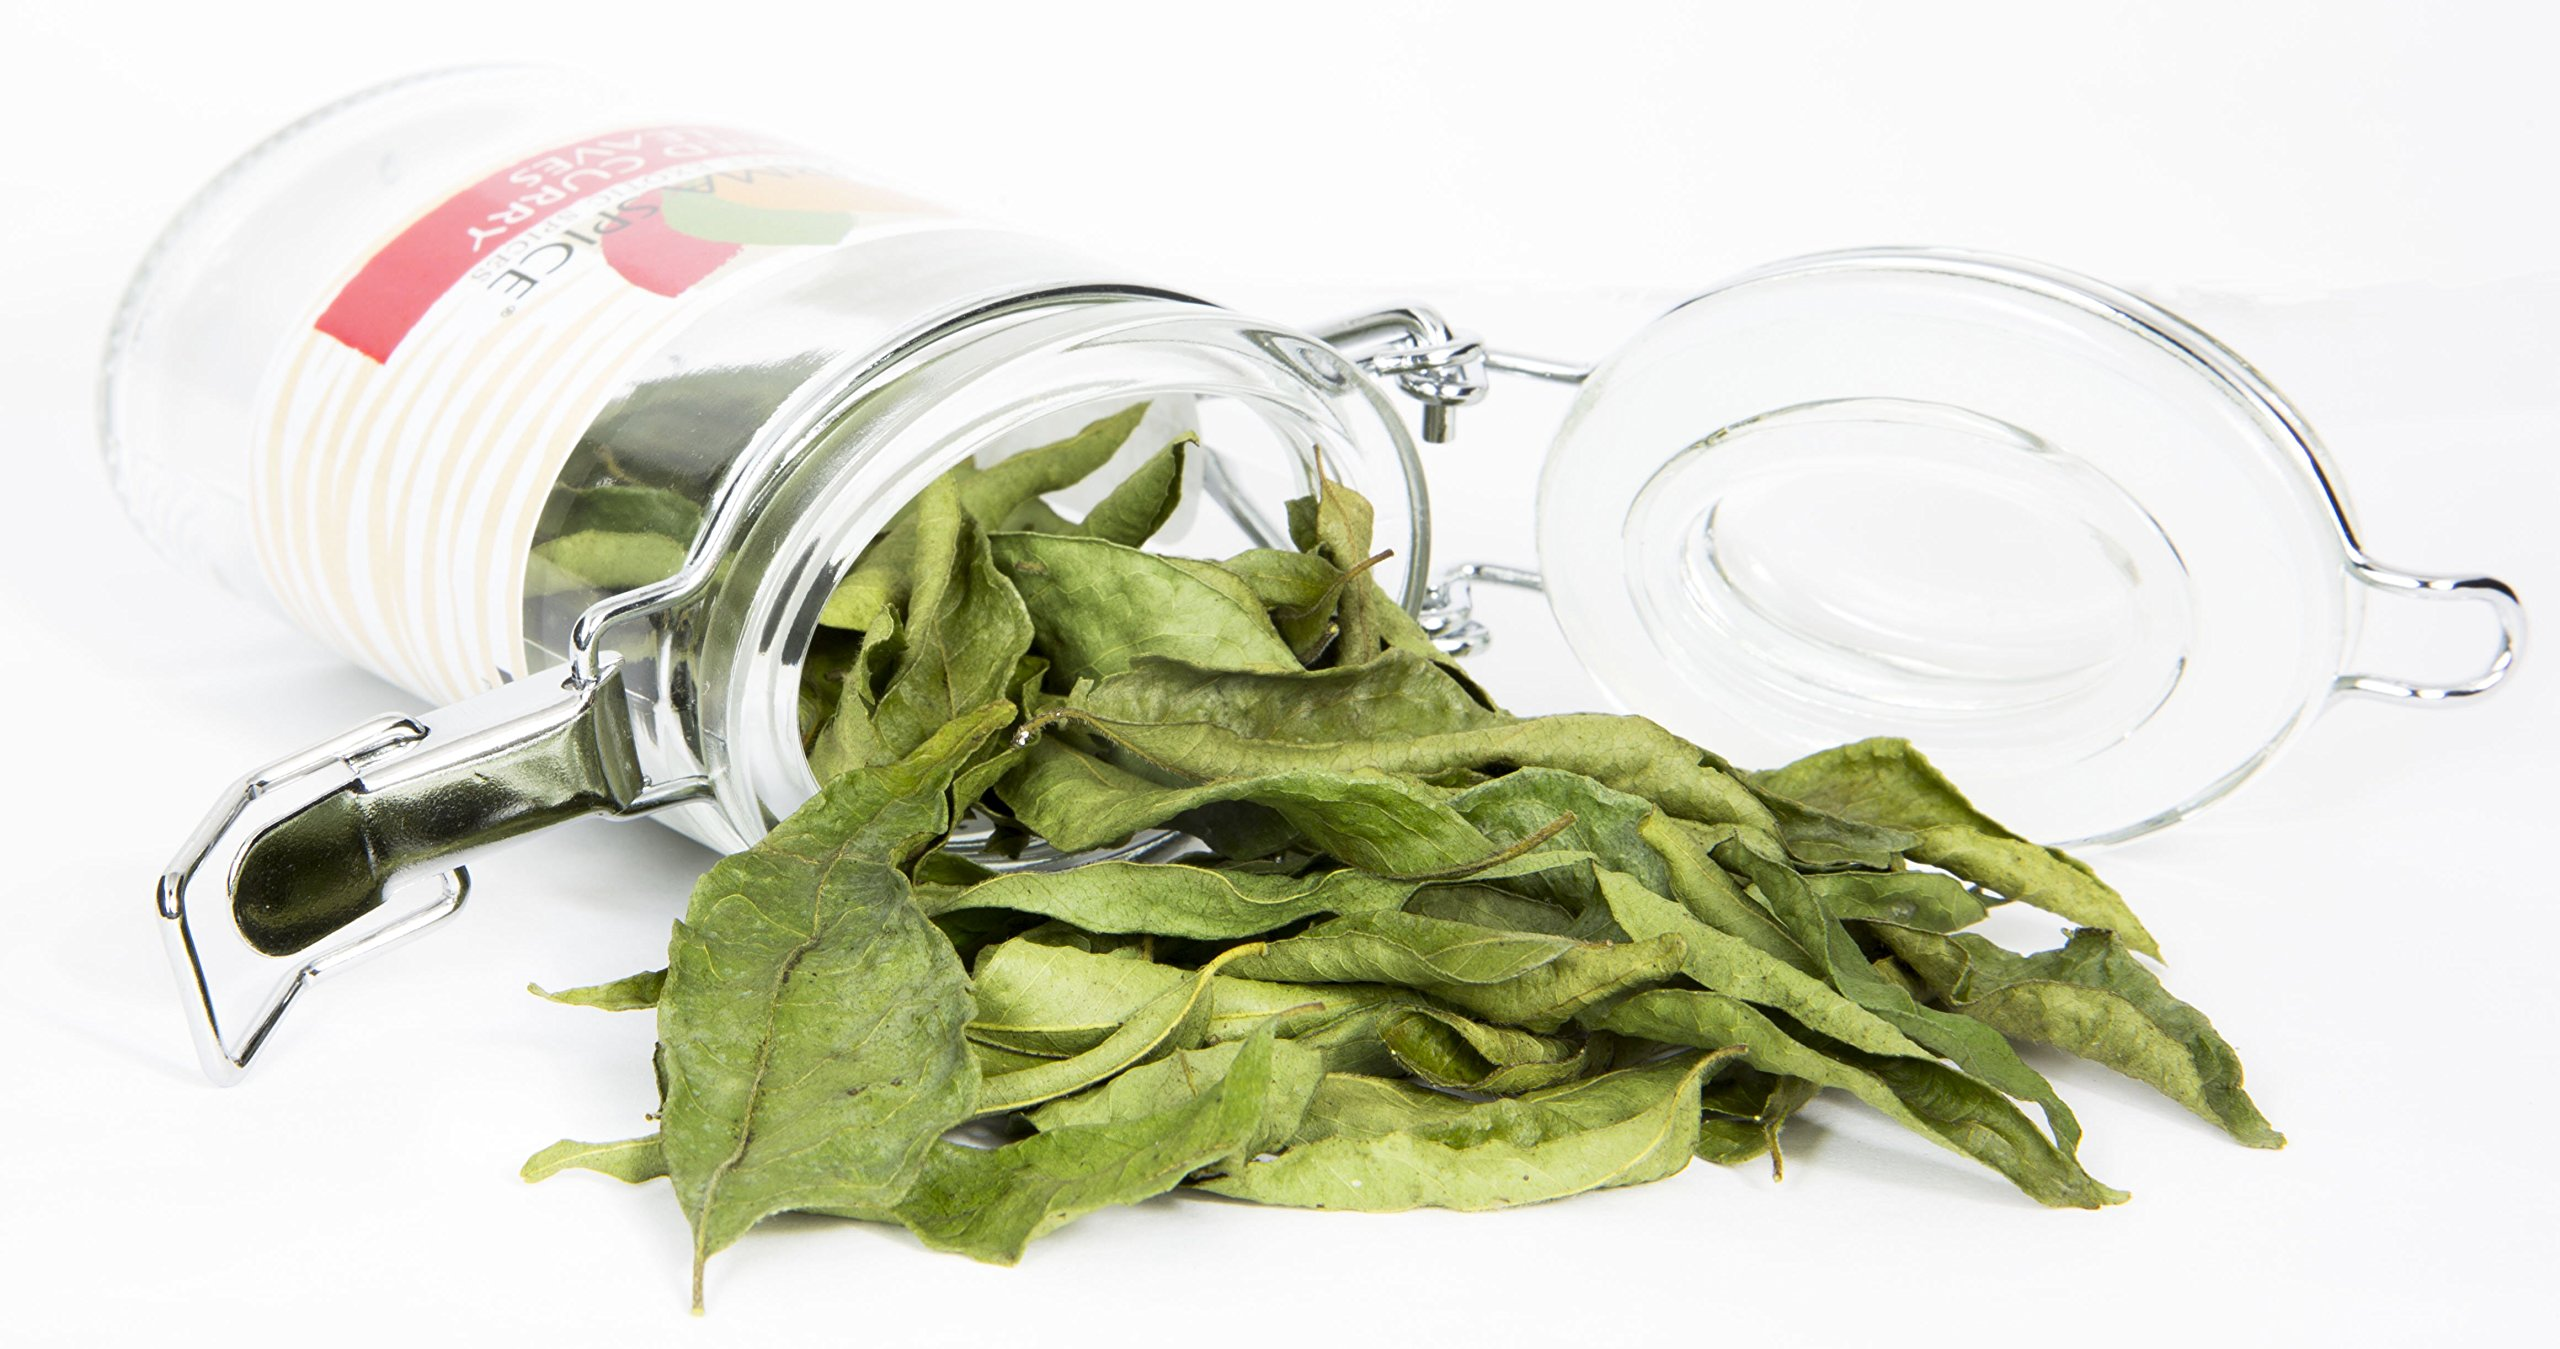 Dried curry leaves (Kari) l 100% Kosher indian spices l Great for Ayurvedic medicine l 0.1 ounces l